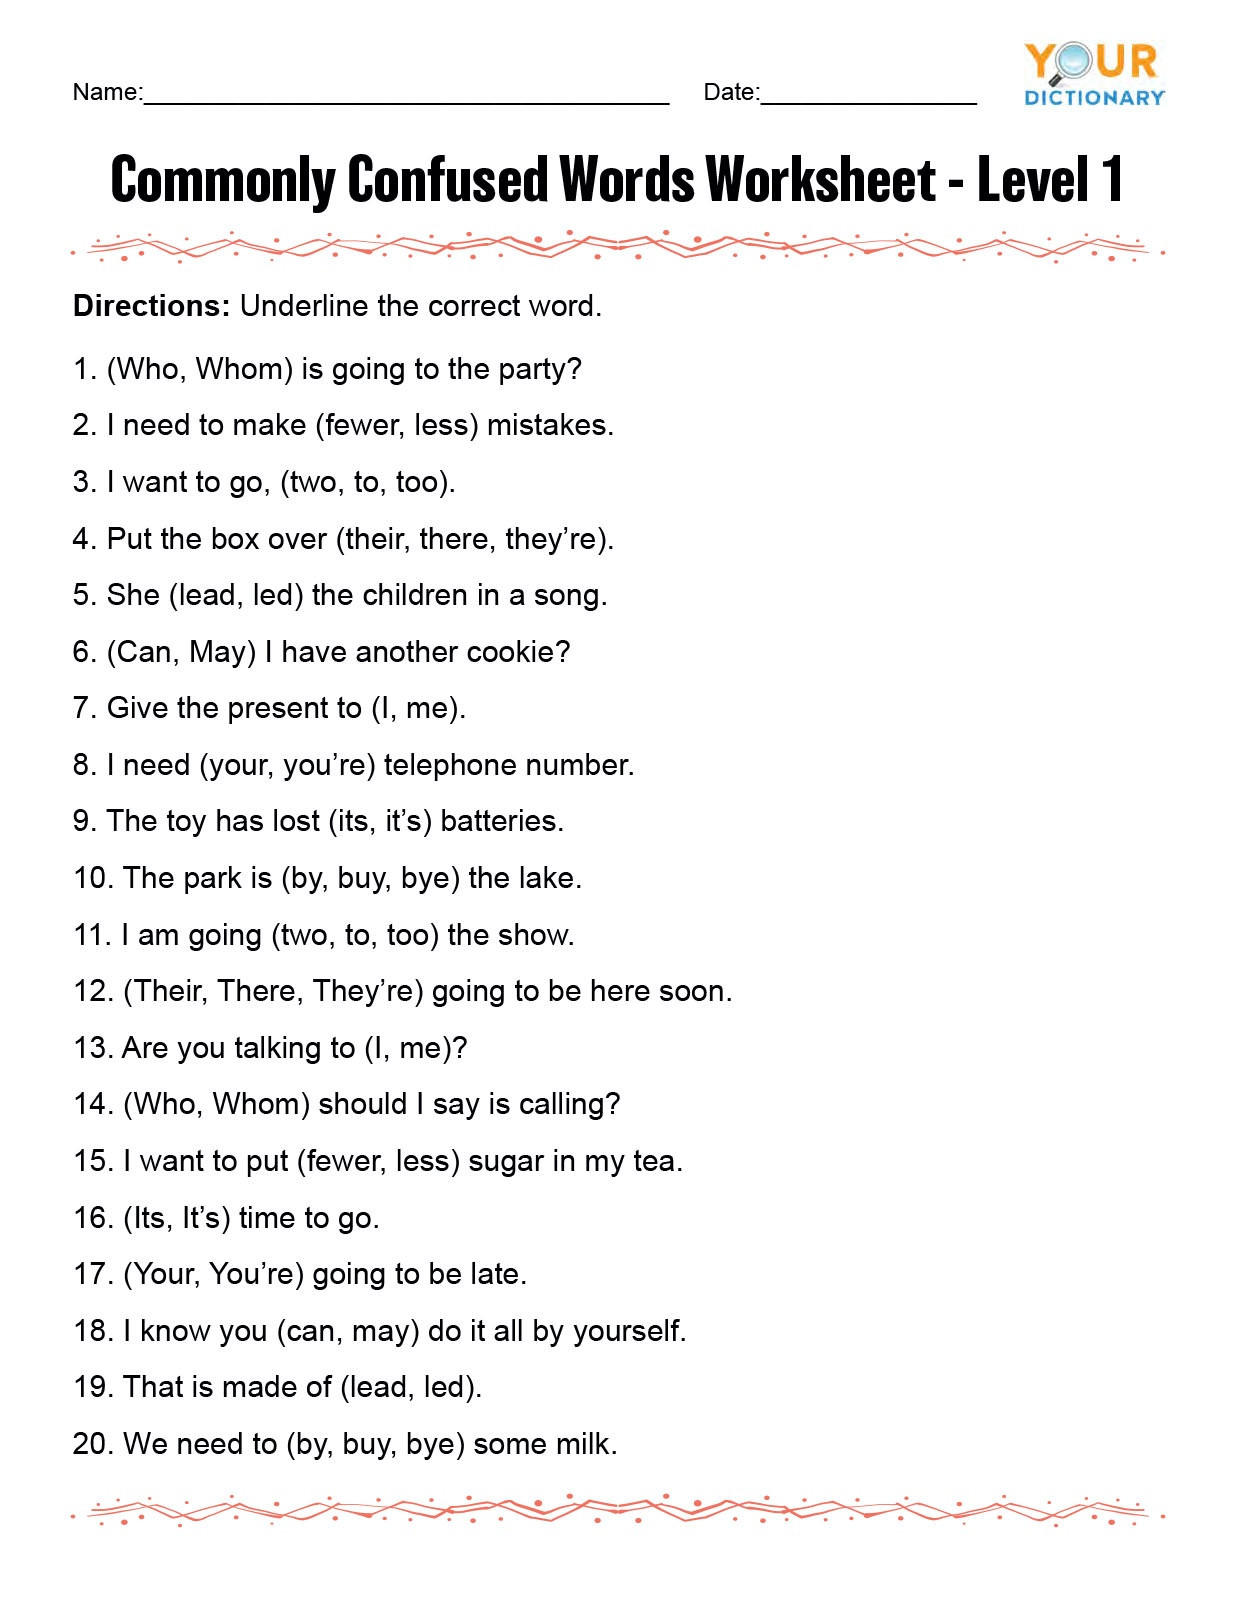 Homophones Worksheets 4th Grade Monly Confused Words Worksheet